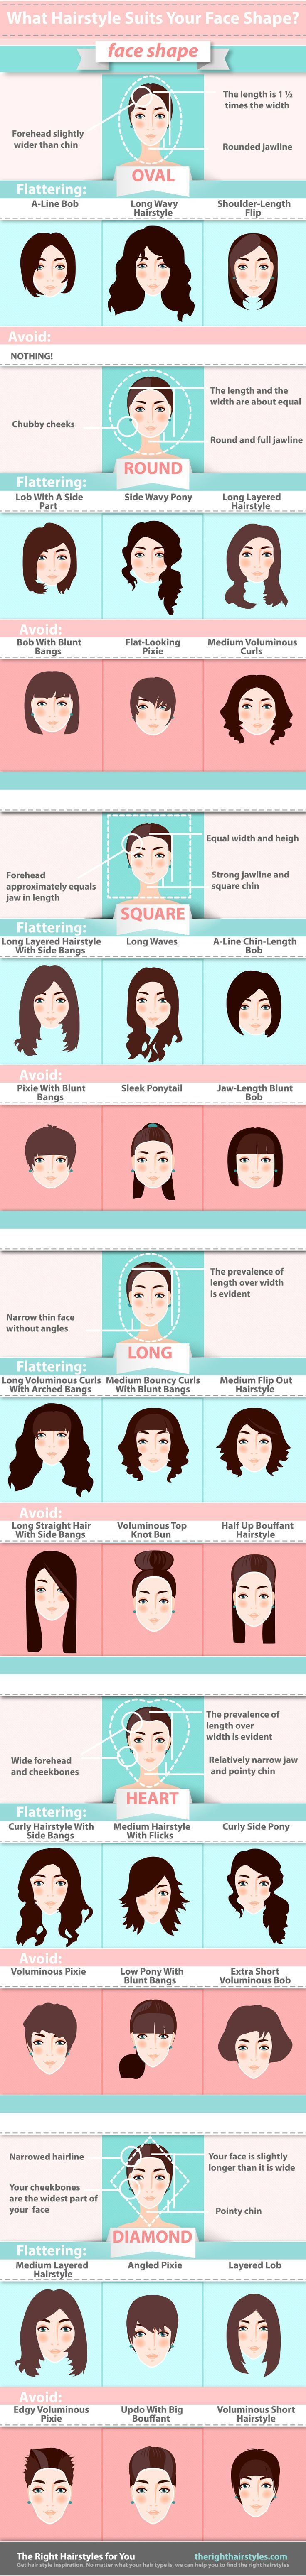 What Hairstyle Suits You According To Your Face Shape The Right Hairstyles For You Cool Hairstyles Hair Guide Long Hair Styles